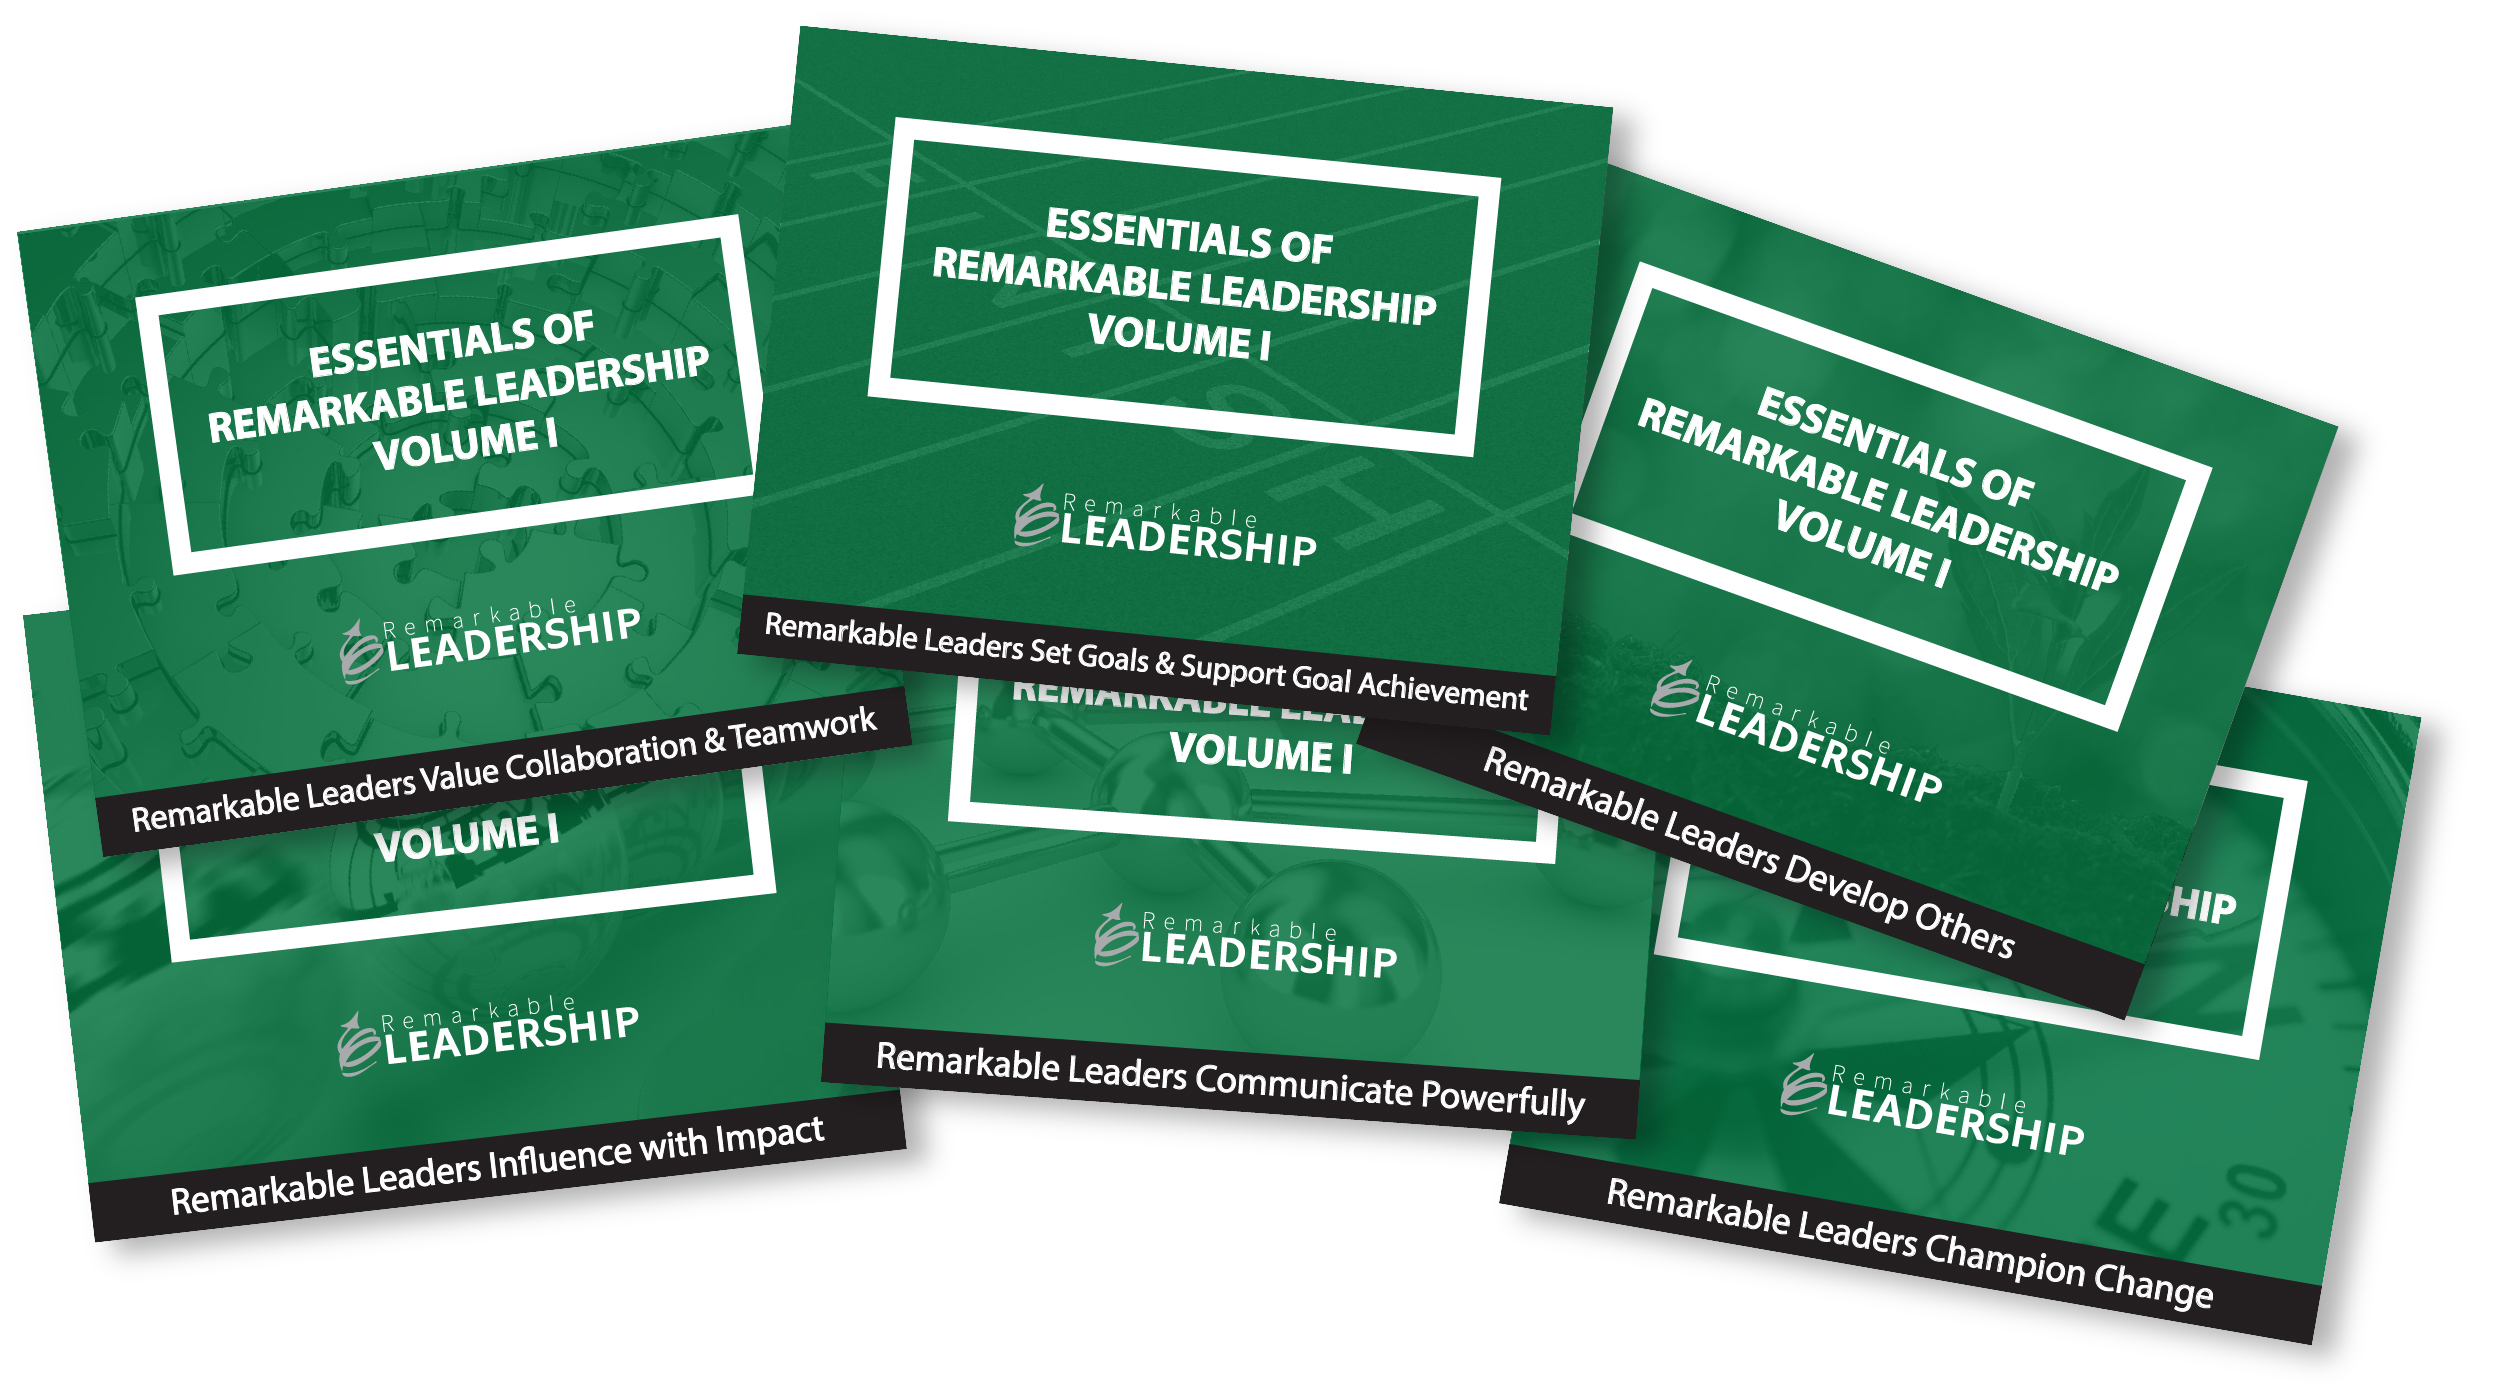 Essentials of Leadership